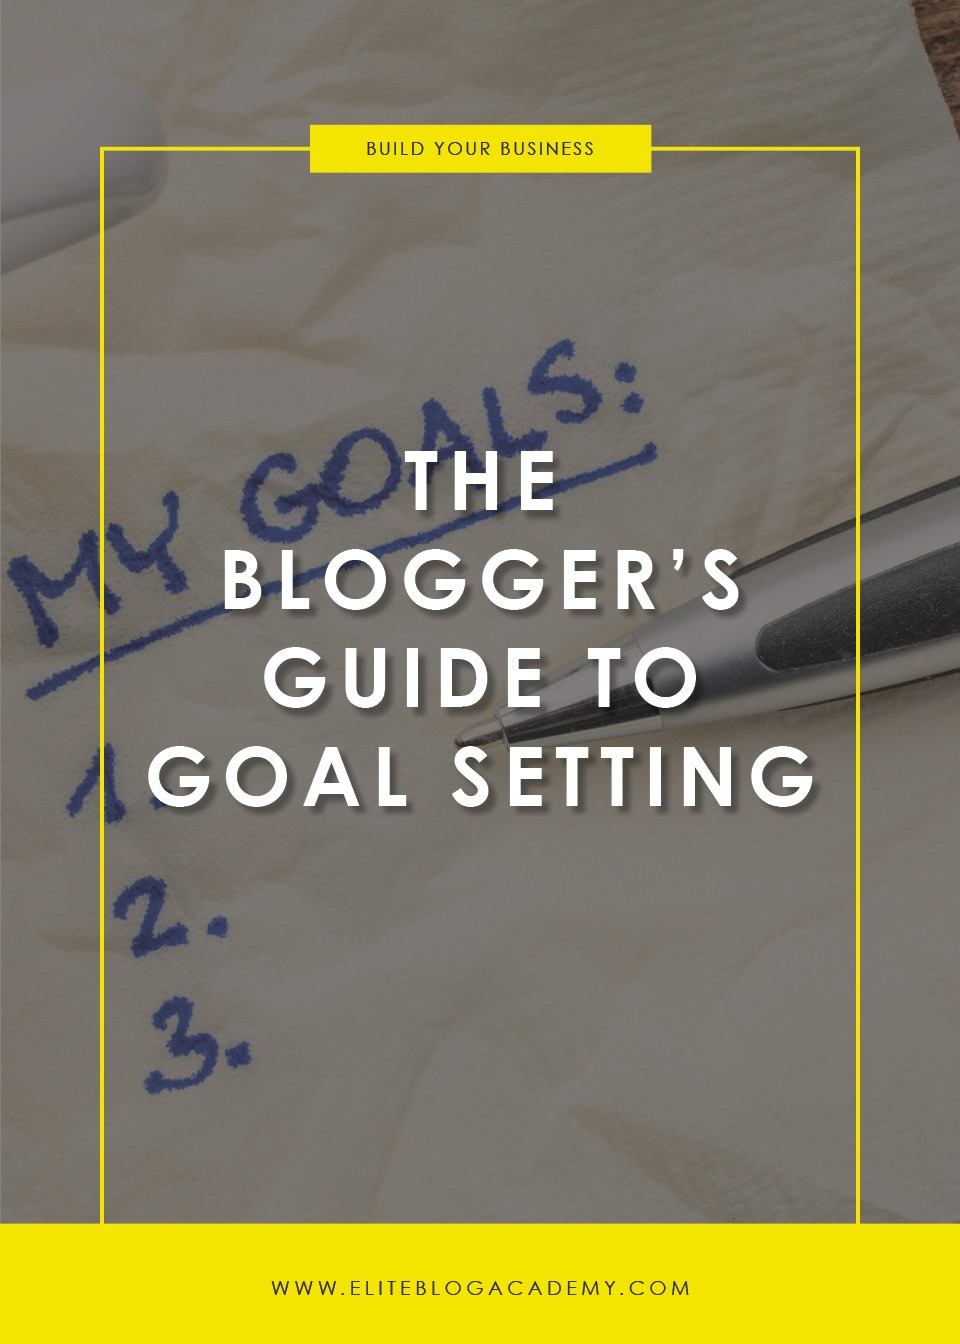 Do you ever feel like you're spinning your wheels in your blogging business? Maybe it's time to reevaluate your goals. Goals are like compasses for our business, and without that clear direction it's easy to get lost. Check out these tips for how to set clear goals, stick with them, and adjust them along the way to create the blogging business we've always dreamed of!